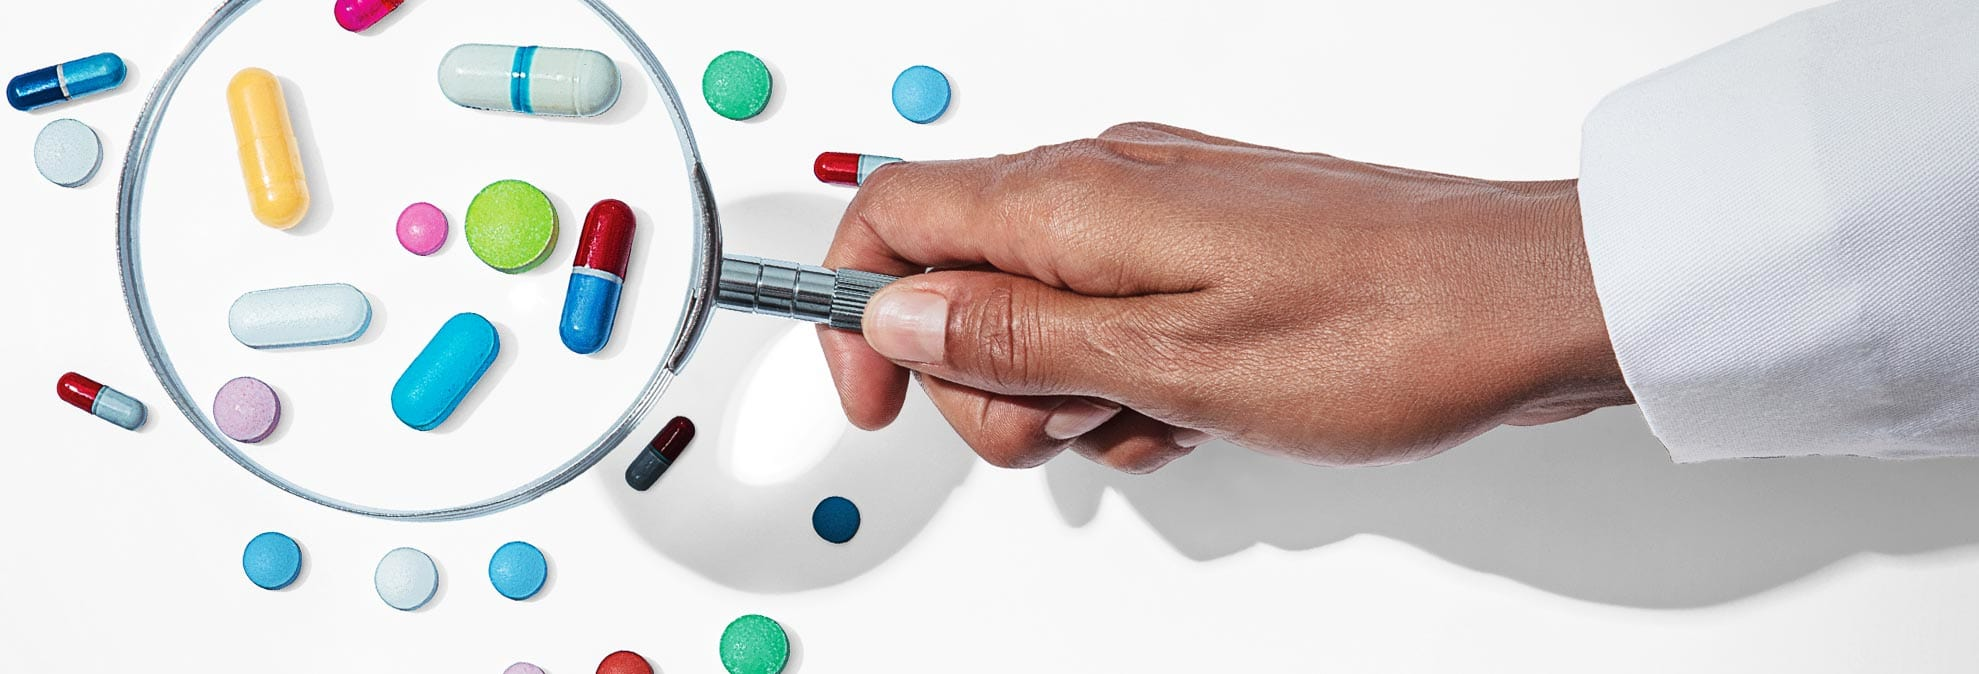 product registration cards review consumer reports give your drugs a checkup reviewing your medication list can prevent errors